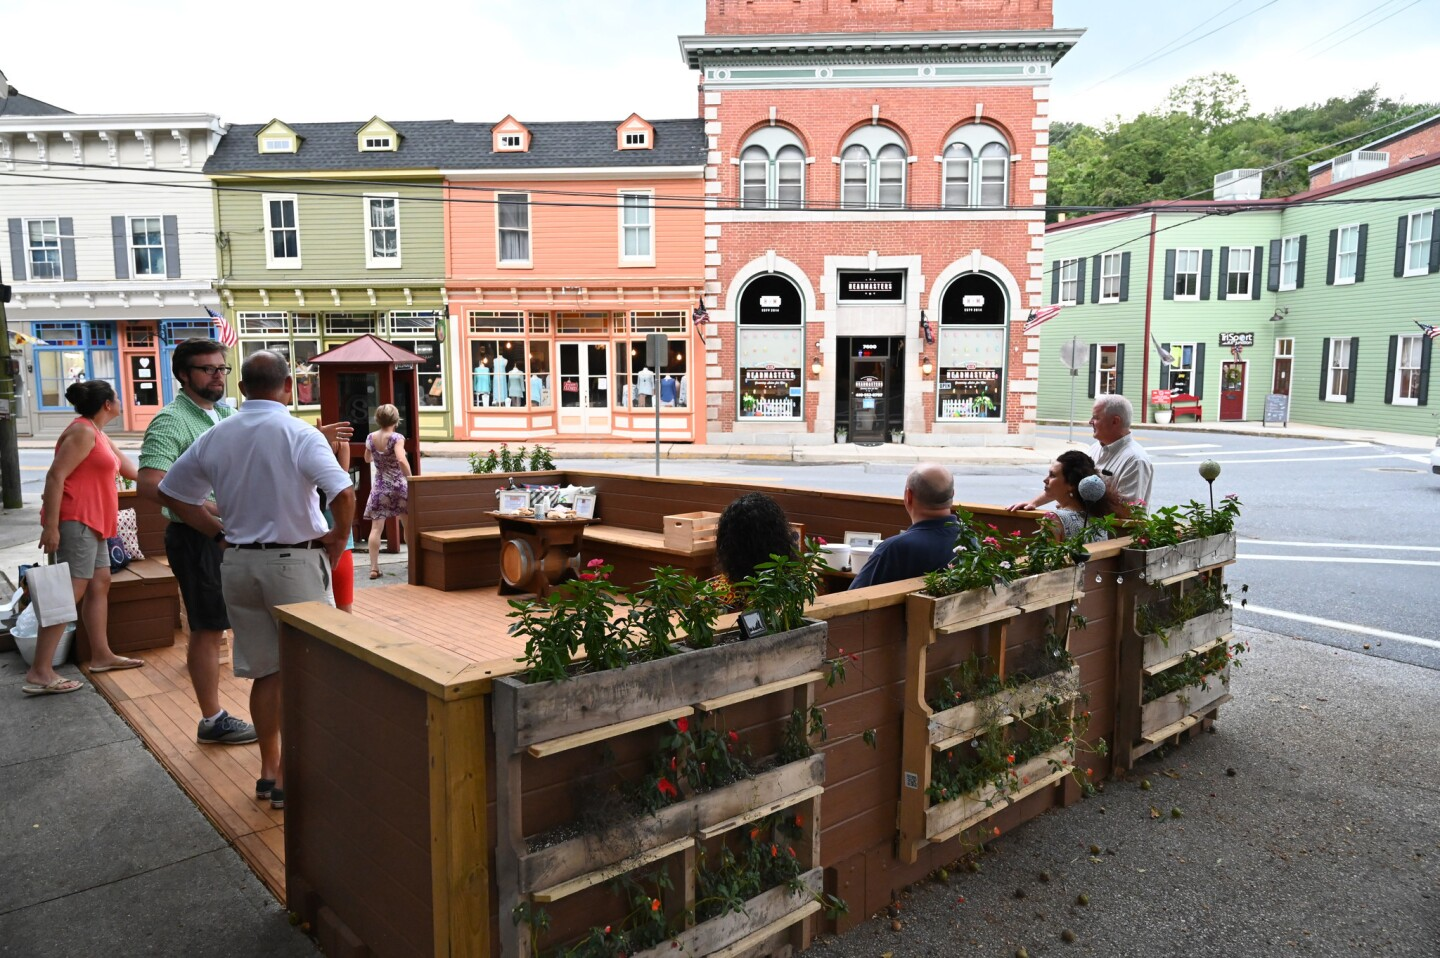 People gather to celebrate the opening of the new parklet, at the intersection of Main Street and Sandosky Road, in Sykesville on August 20.